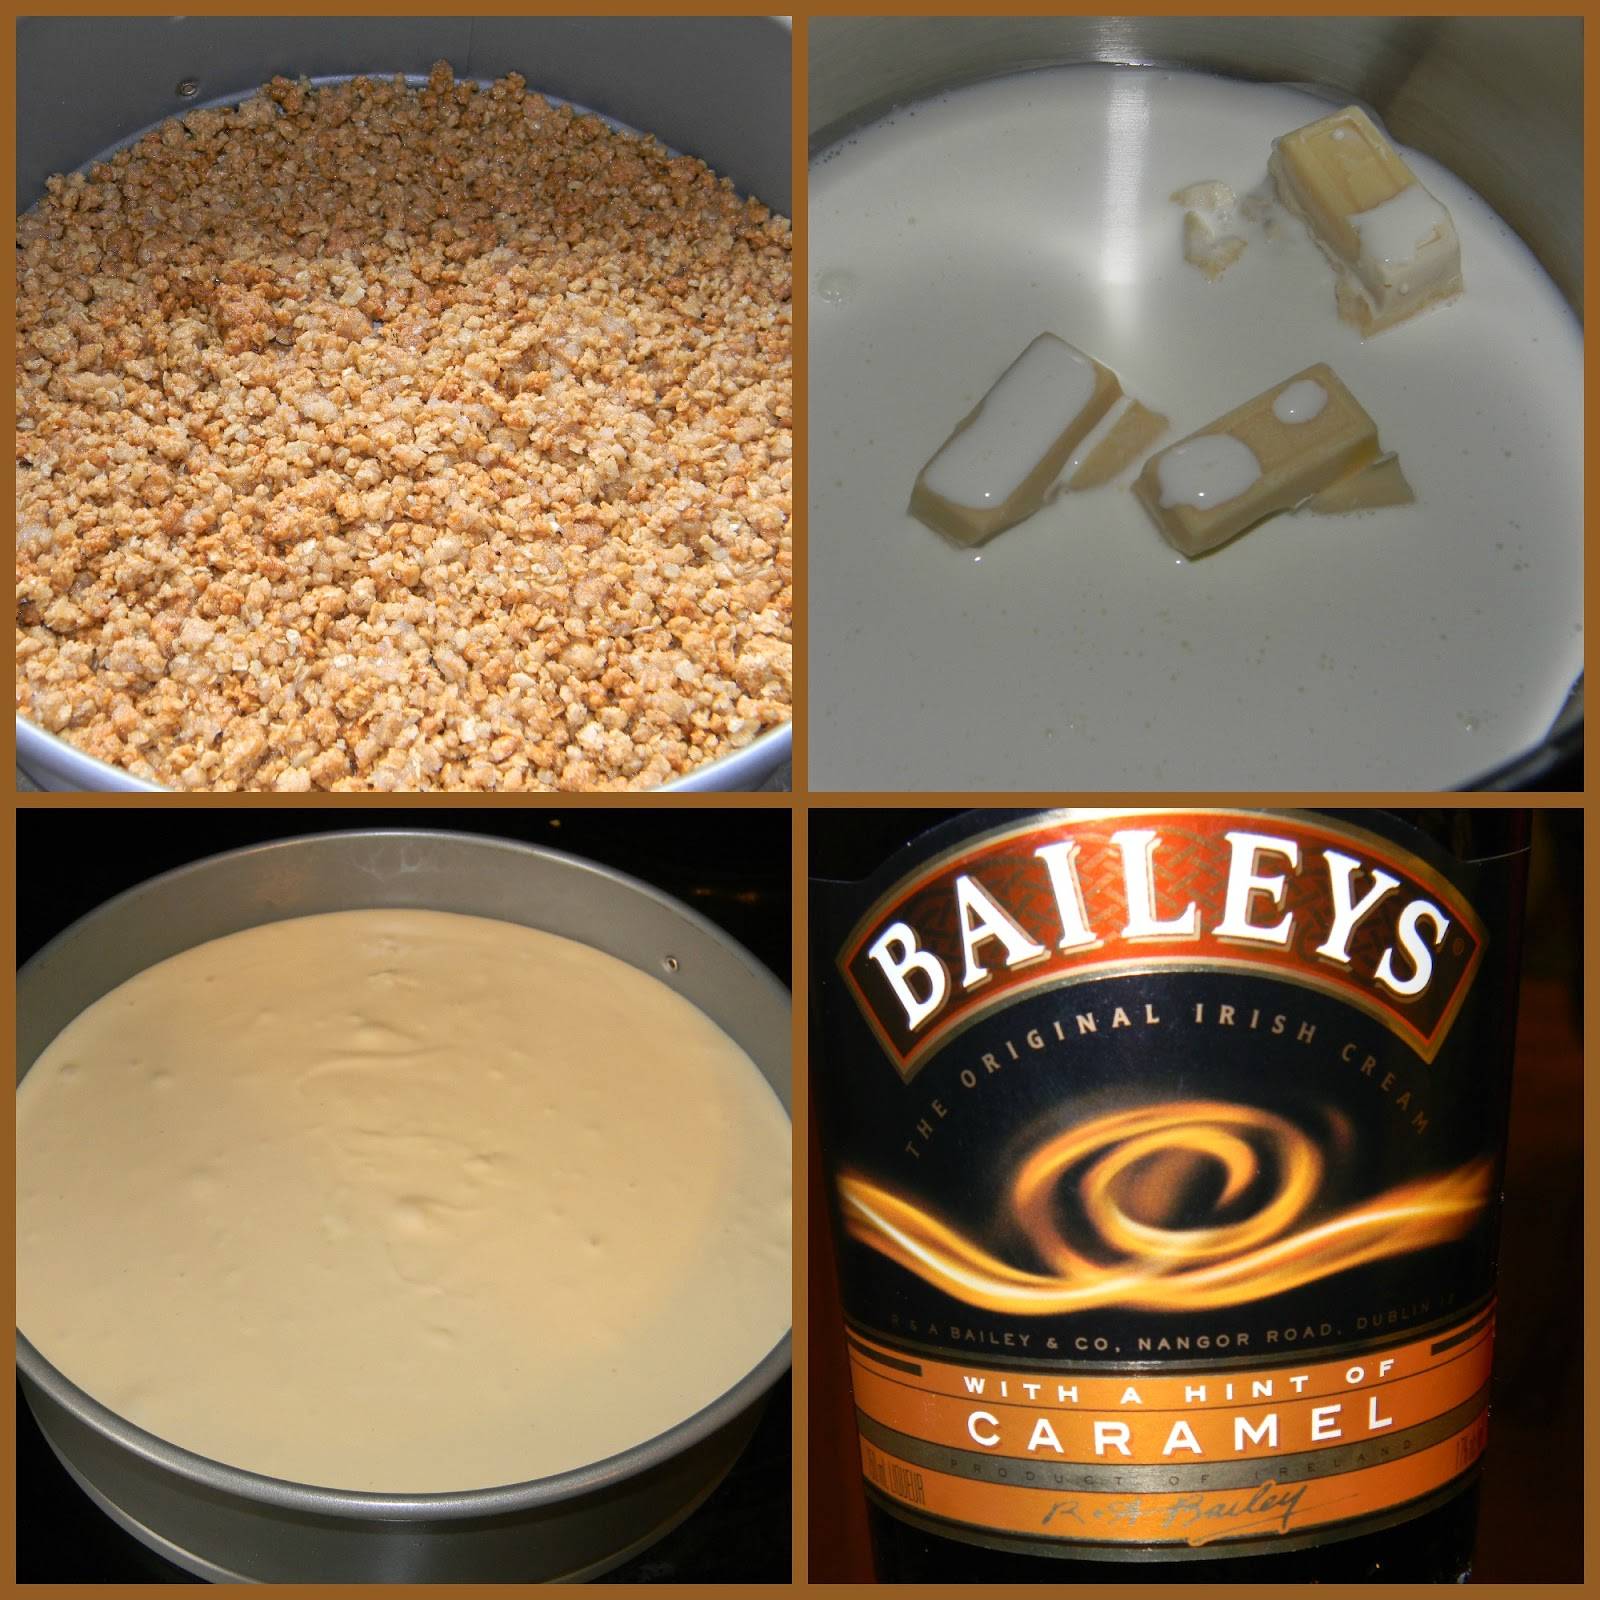 ... and more: Caramel Irish Cream Cheesecake with salted Caramel Sauce